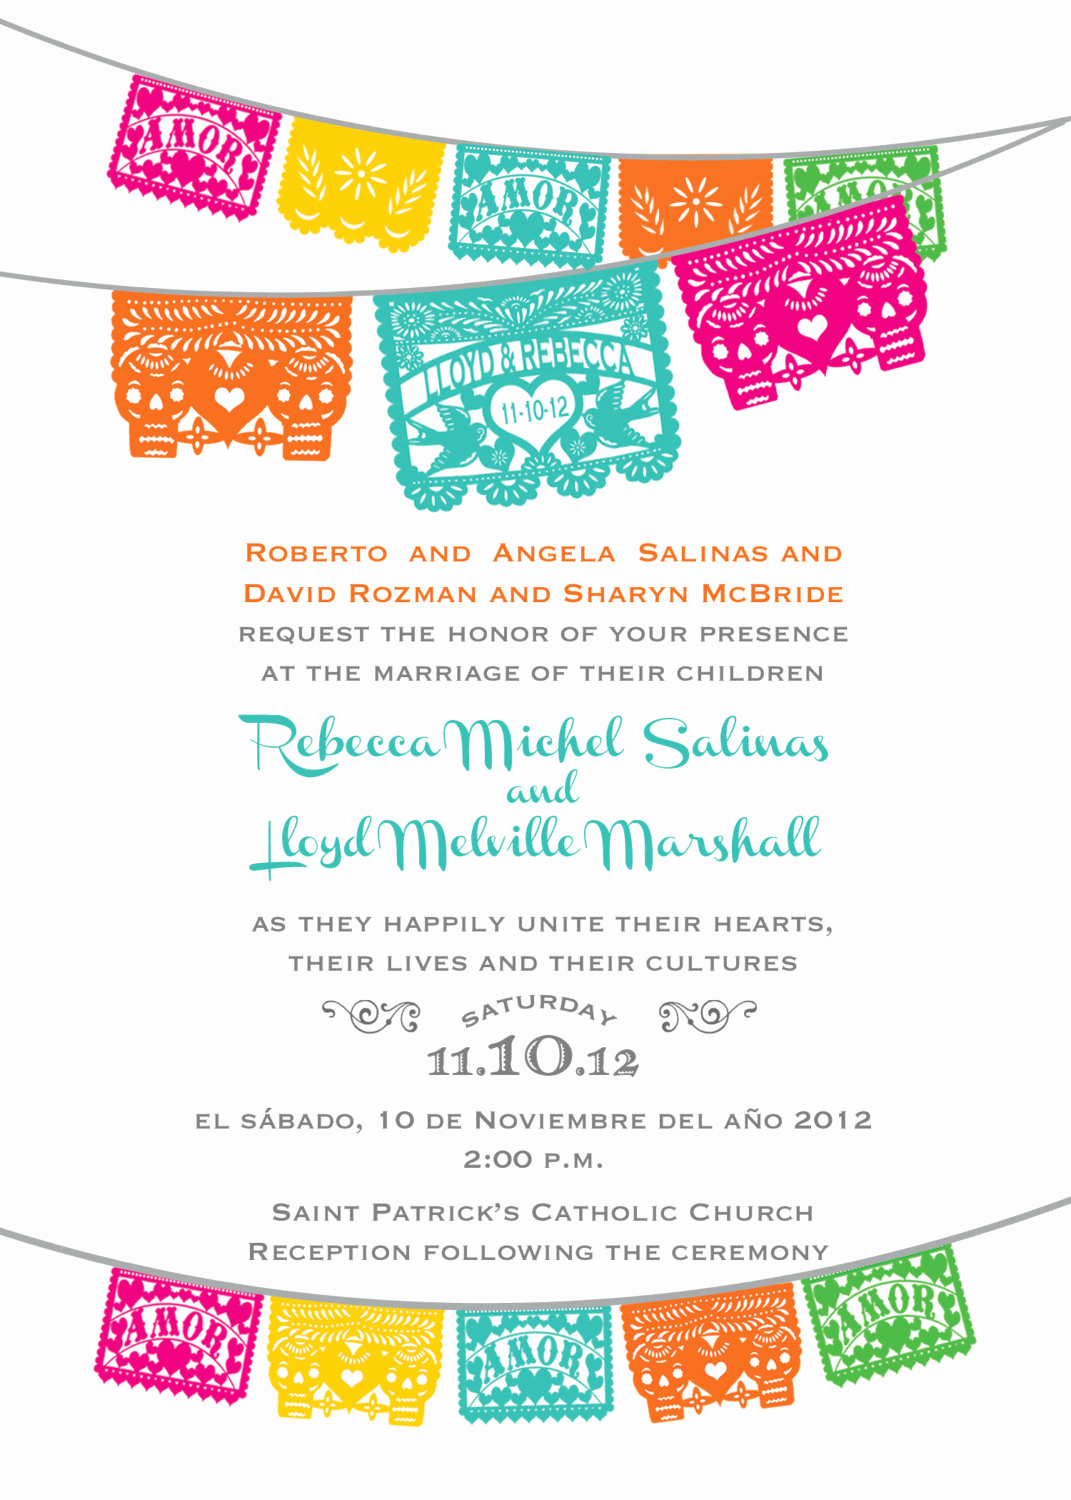 Papel Picado Invitation Template Free Beautiful Day Of the Dead Skull Papel Picado Wedding Invitation I